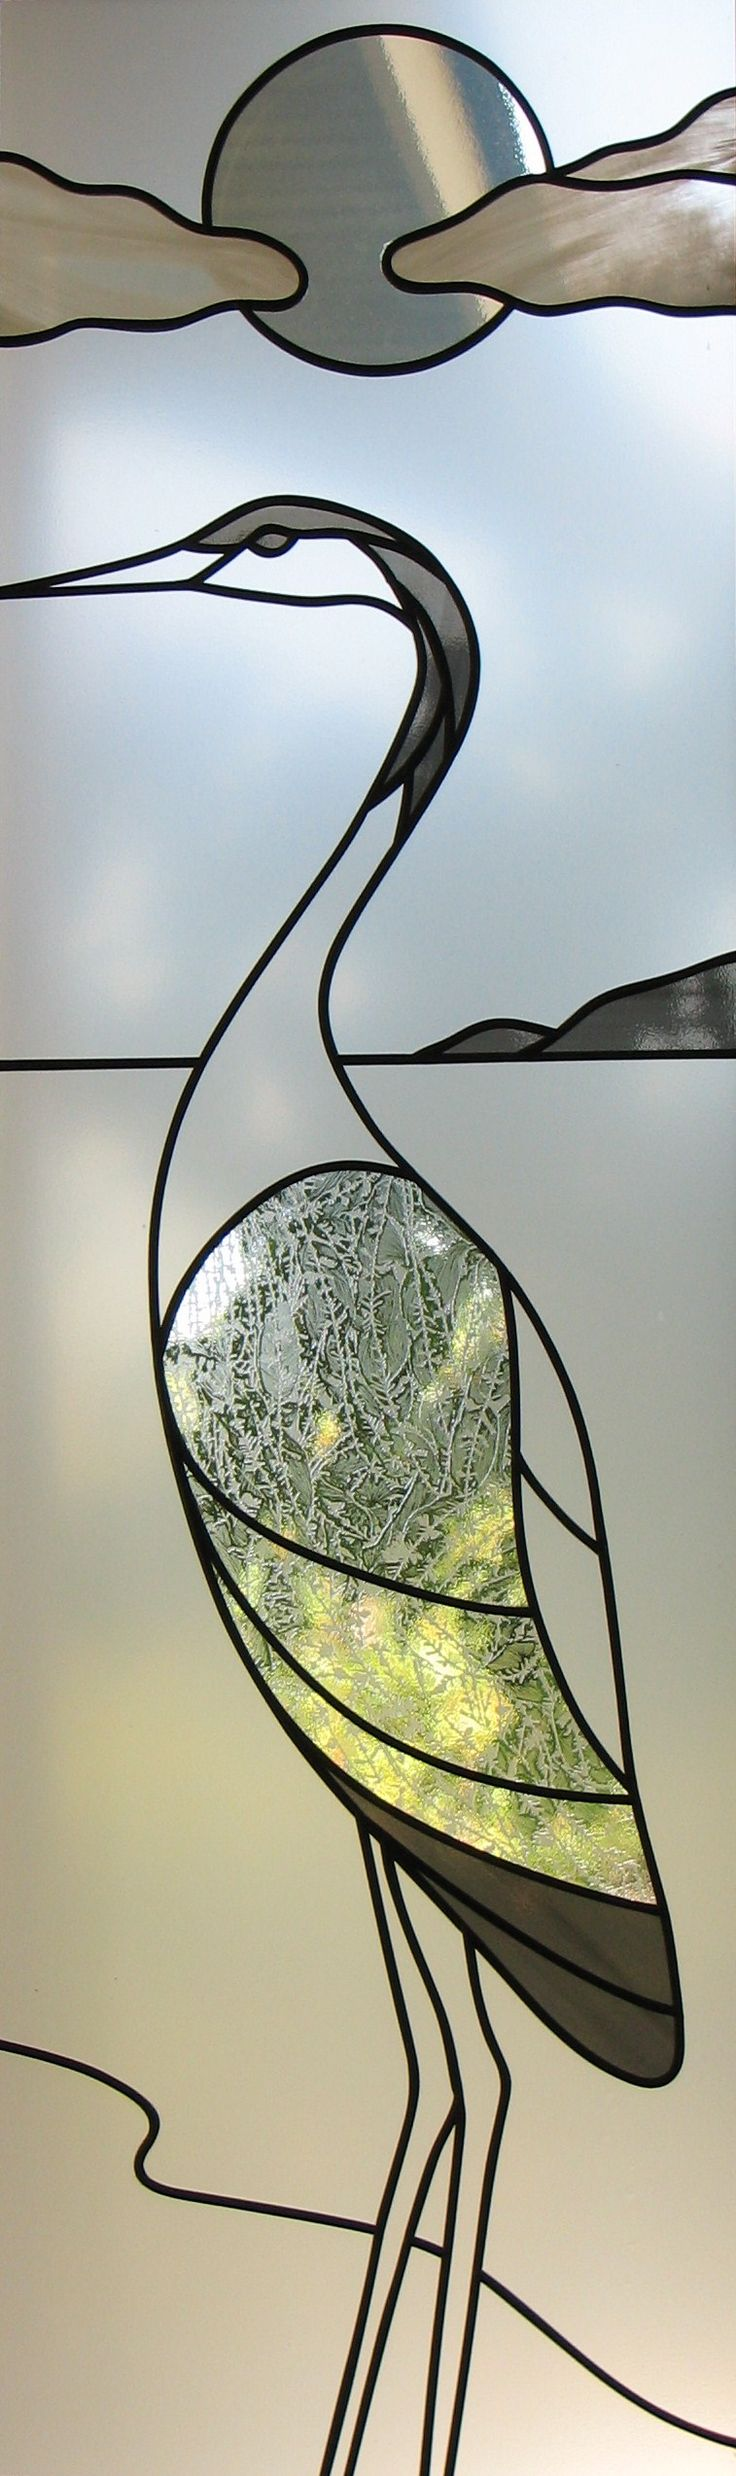 They are such inspiring birds! Stained glass heron in clear textures